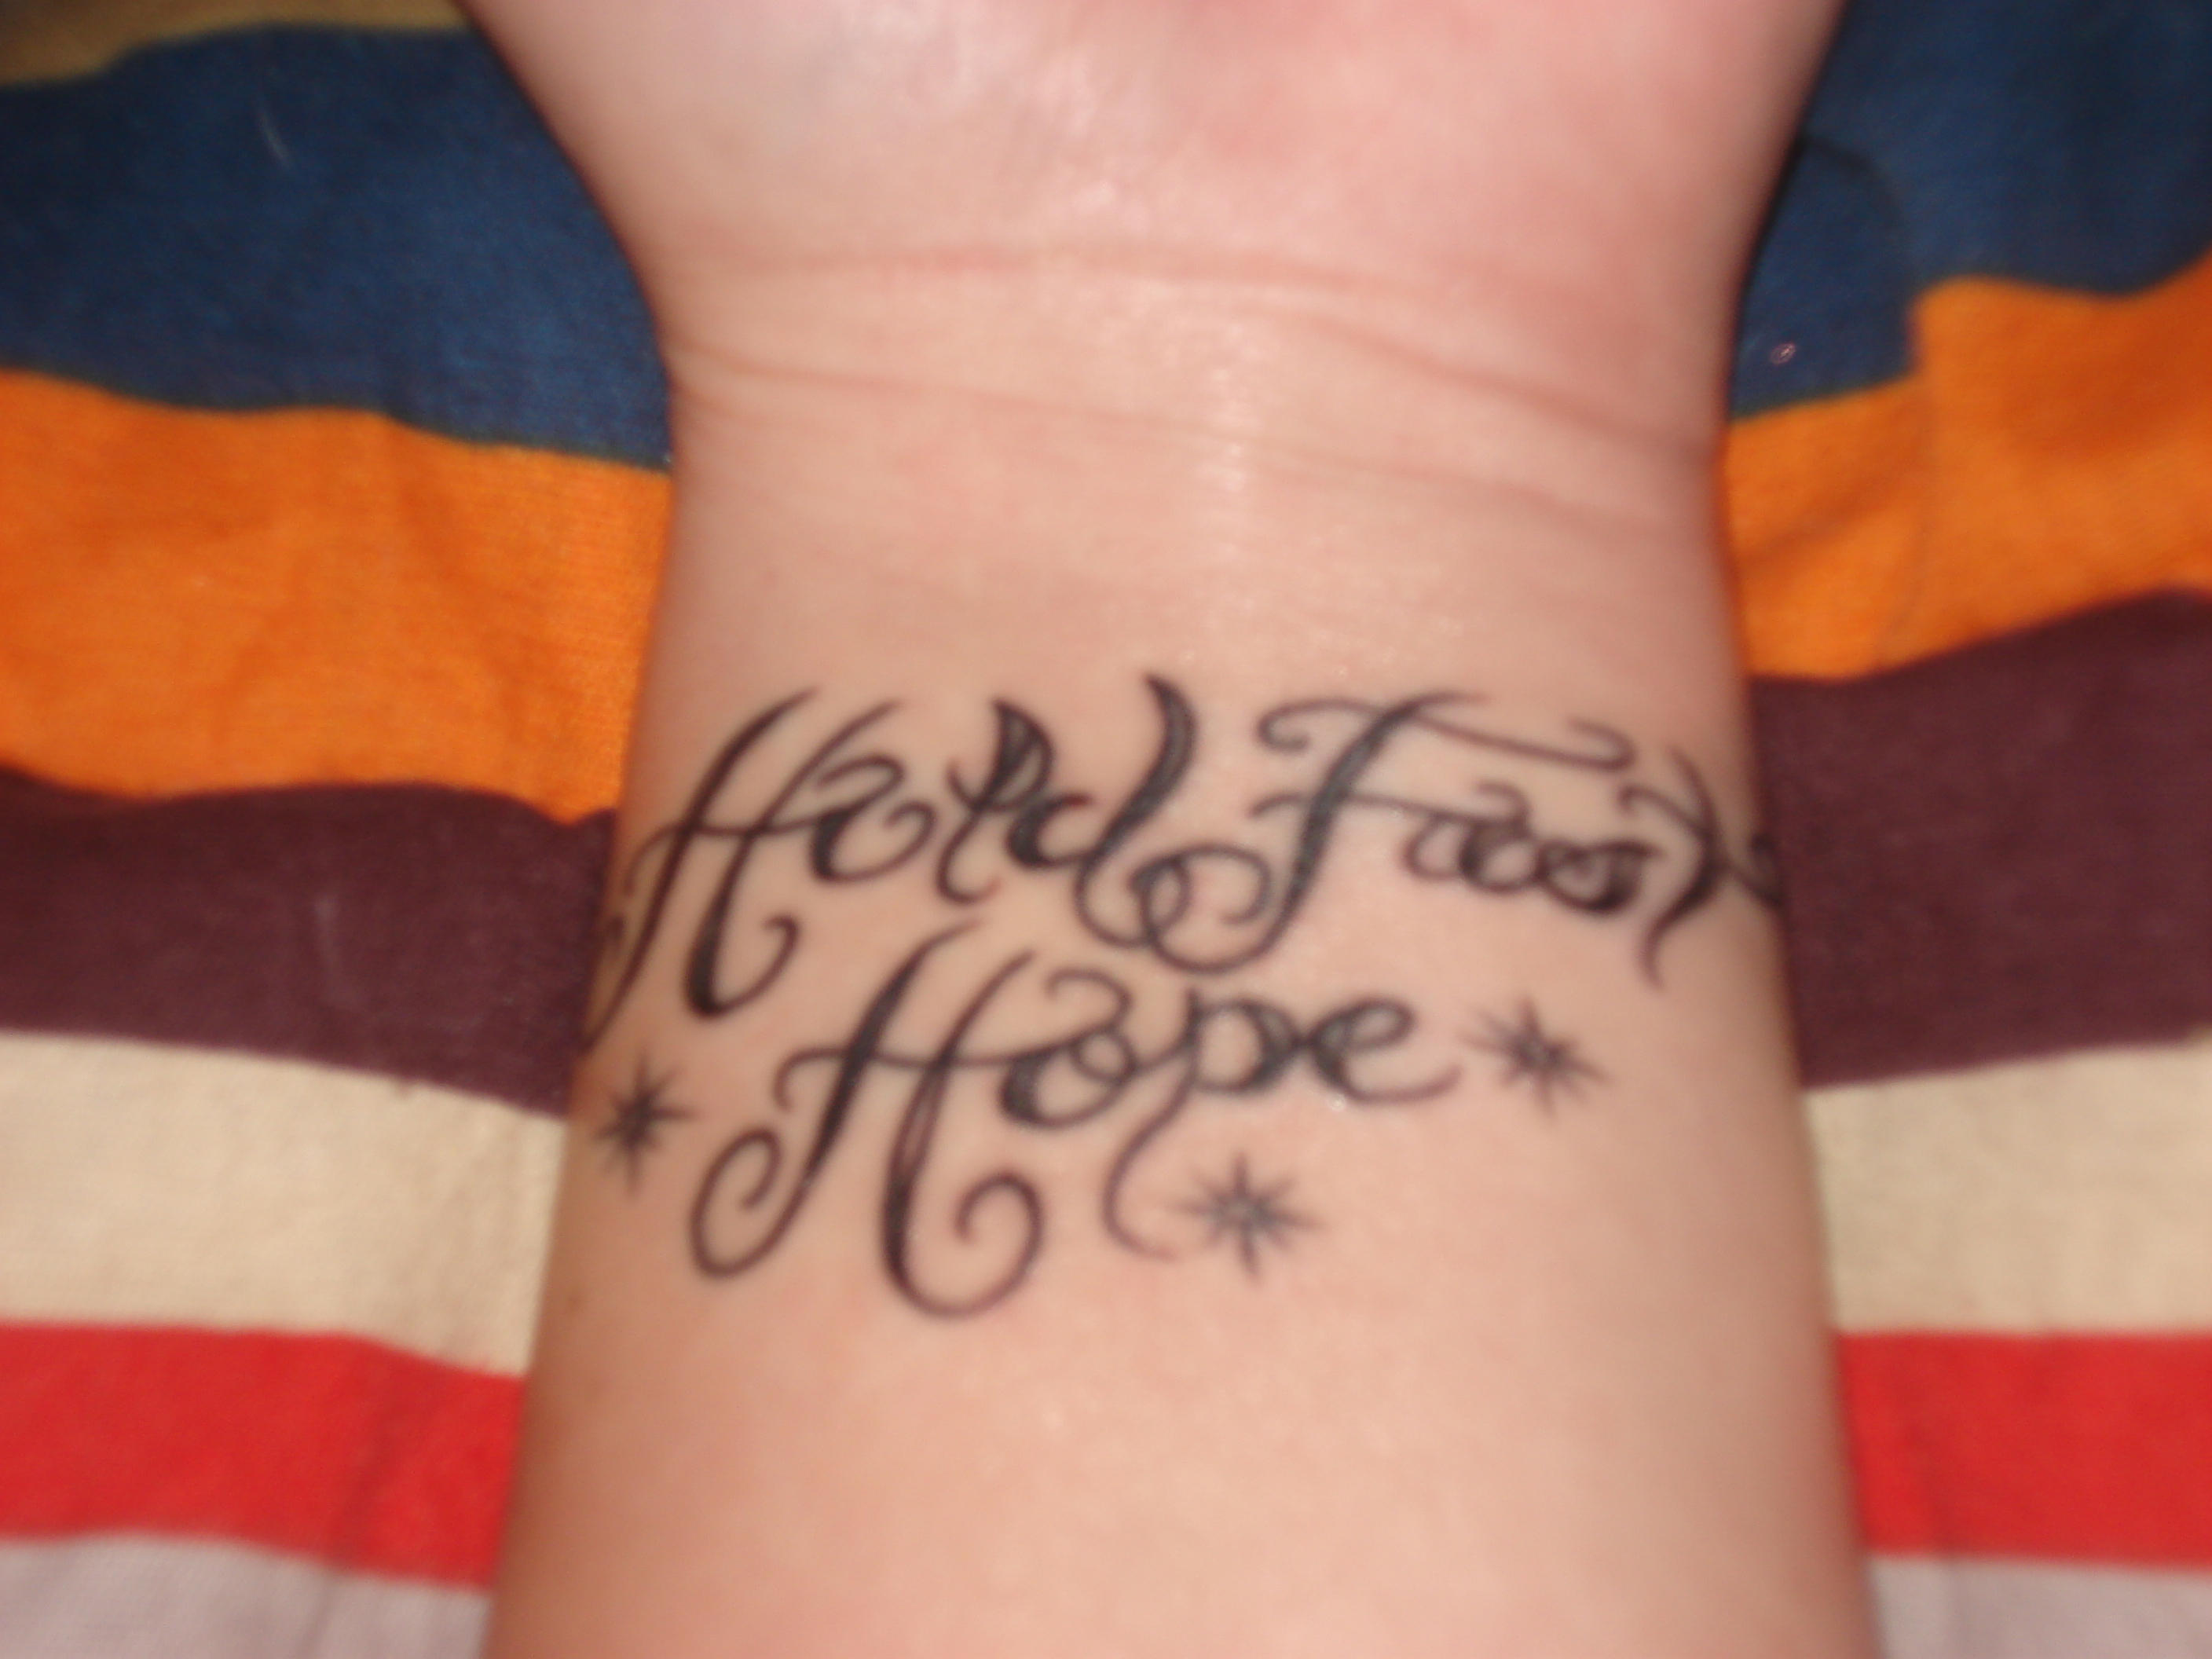 Hold fast hope tattoo by blueoct4lf on deviantart hold fast hope tattoo by blueoct4lf biocorpaavc Gallery